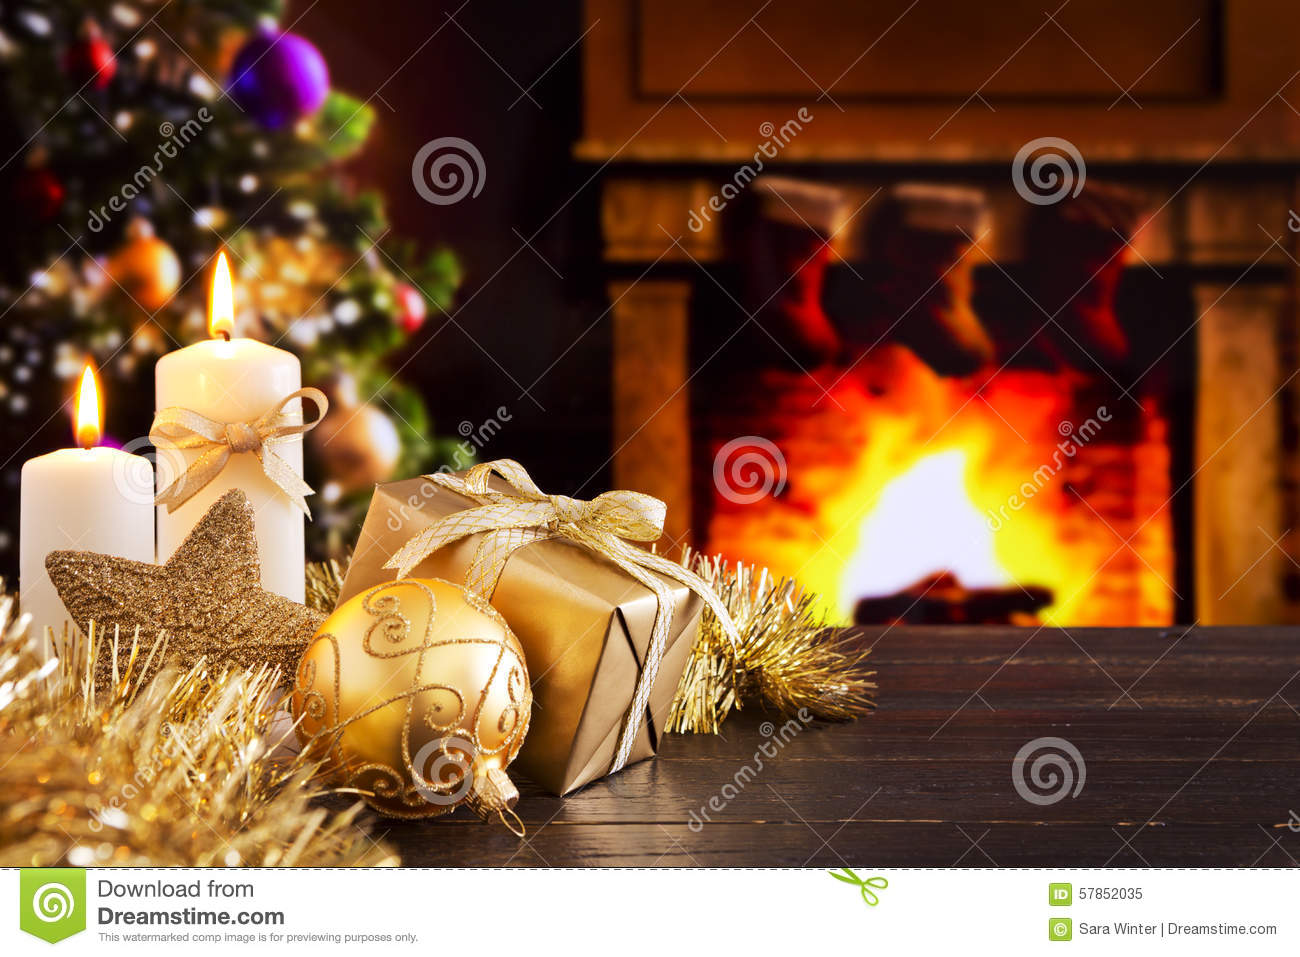 Christmas Scene With Fireplace And Christmas Tree In The